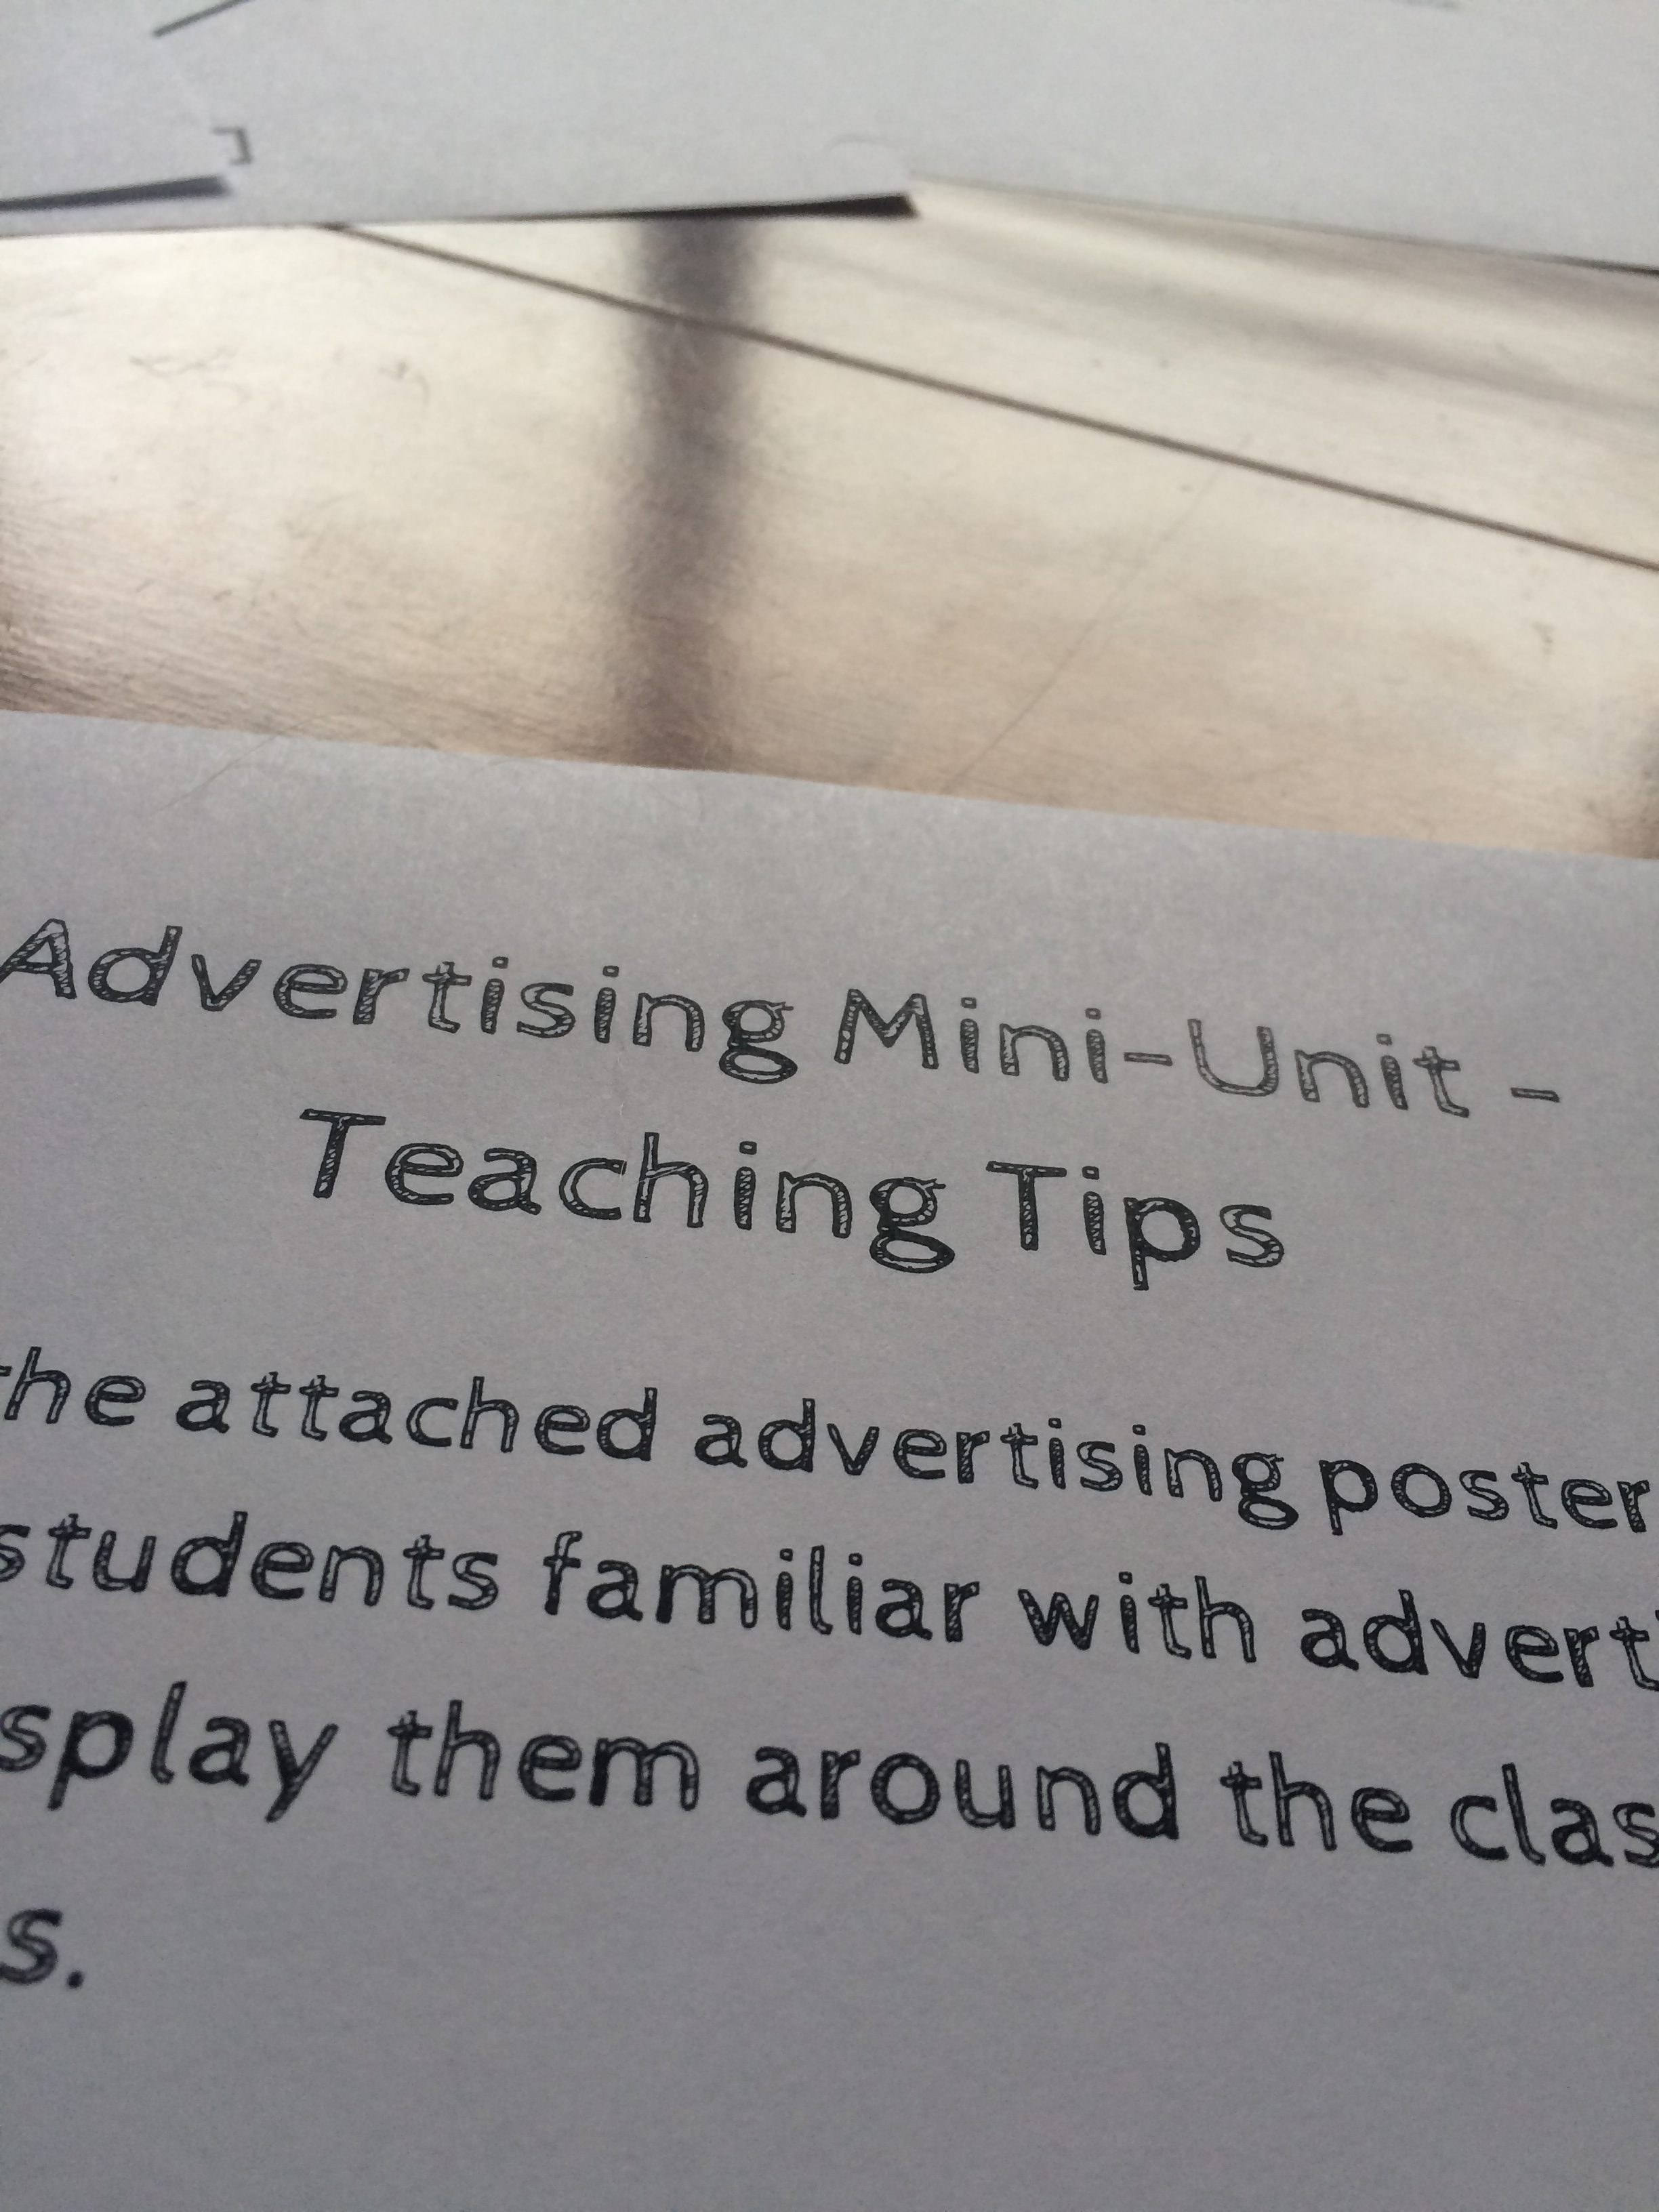 In this advertising unit, students will be asked to identify and create their own techniques in a series of wonderful activities. This unit includes graphic organizers, checklists, rubrics, teaching tips, self assessments and more. Also included is a colorful and engaging poster set about the purpose of advertisements.